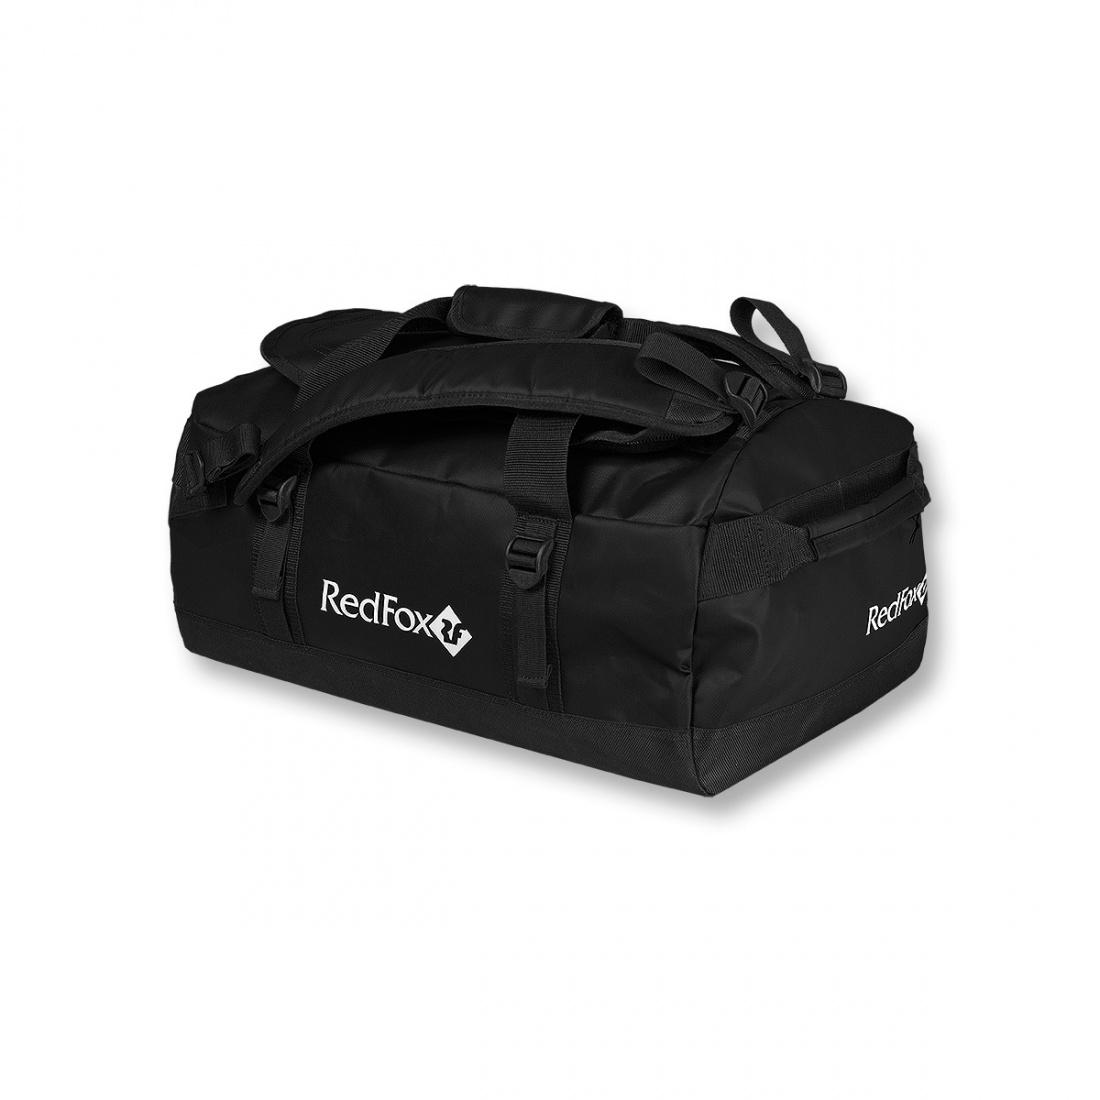 Фото - Баул Expedition Duffel Bag 70 от Red Fox Баул Expedition Duffel Bag 70 (, 1000/черный, , , SS17)